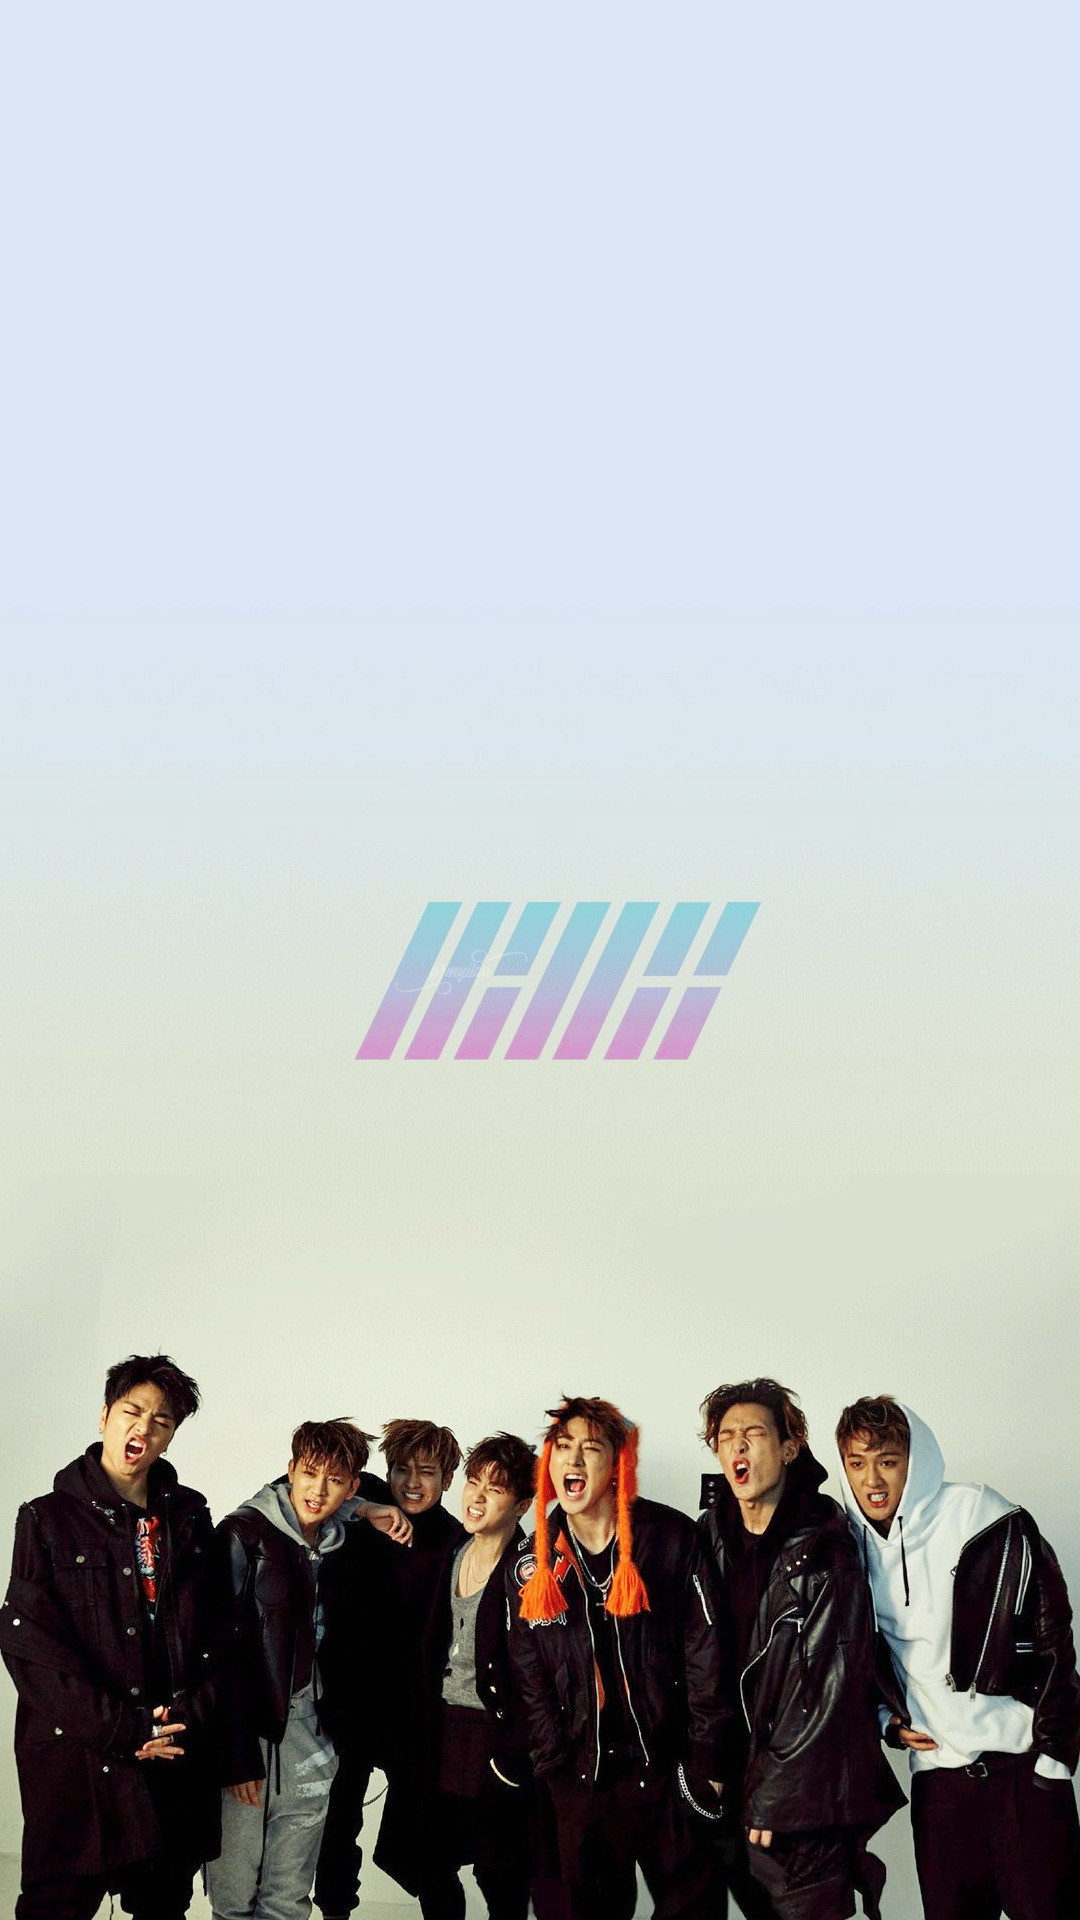 56+] iKON 2018 Wallpapers on WallpaperSafari